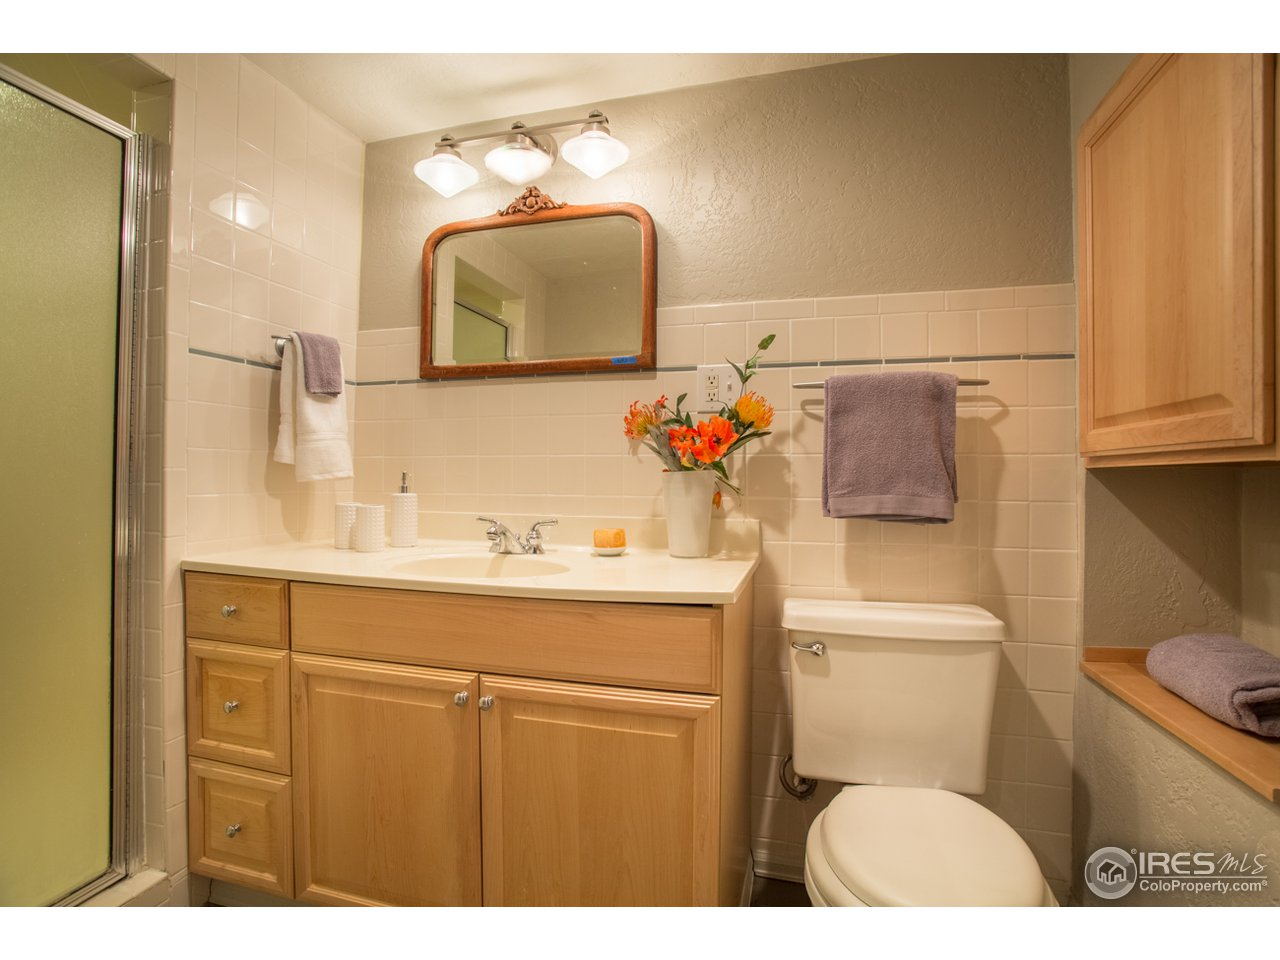 3/4 basement bathroom